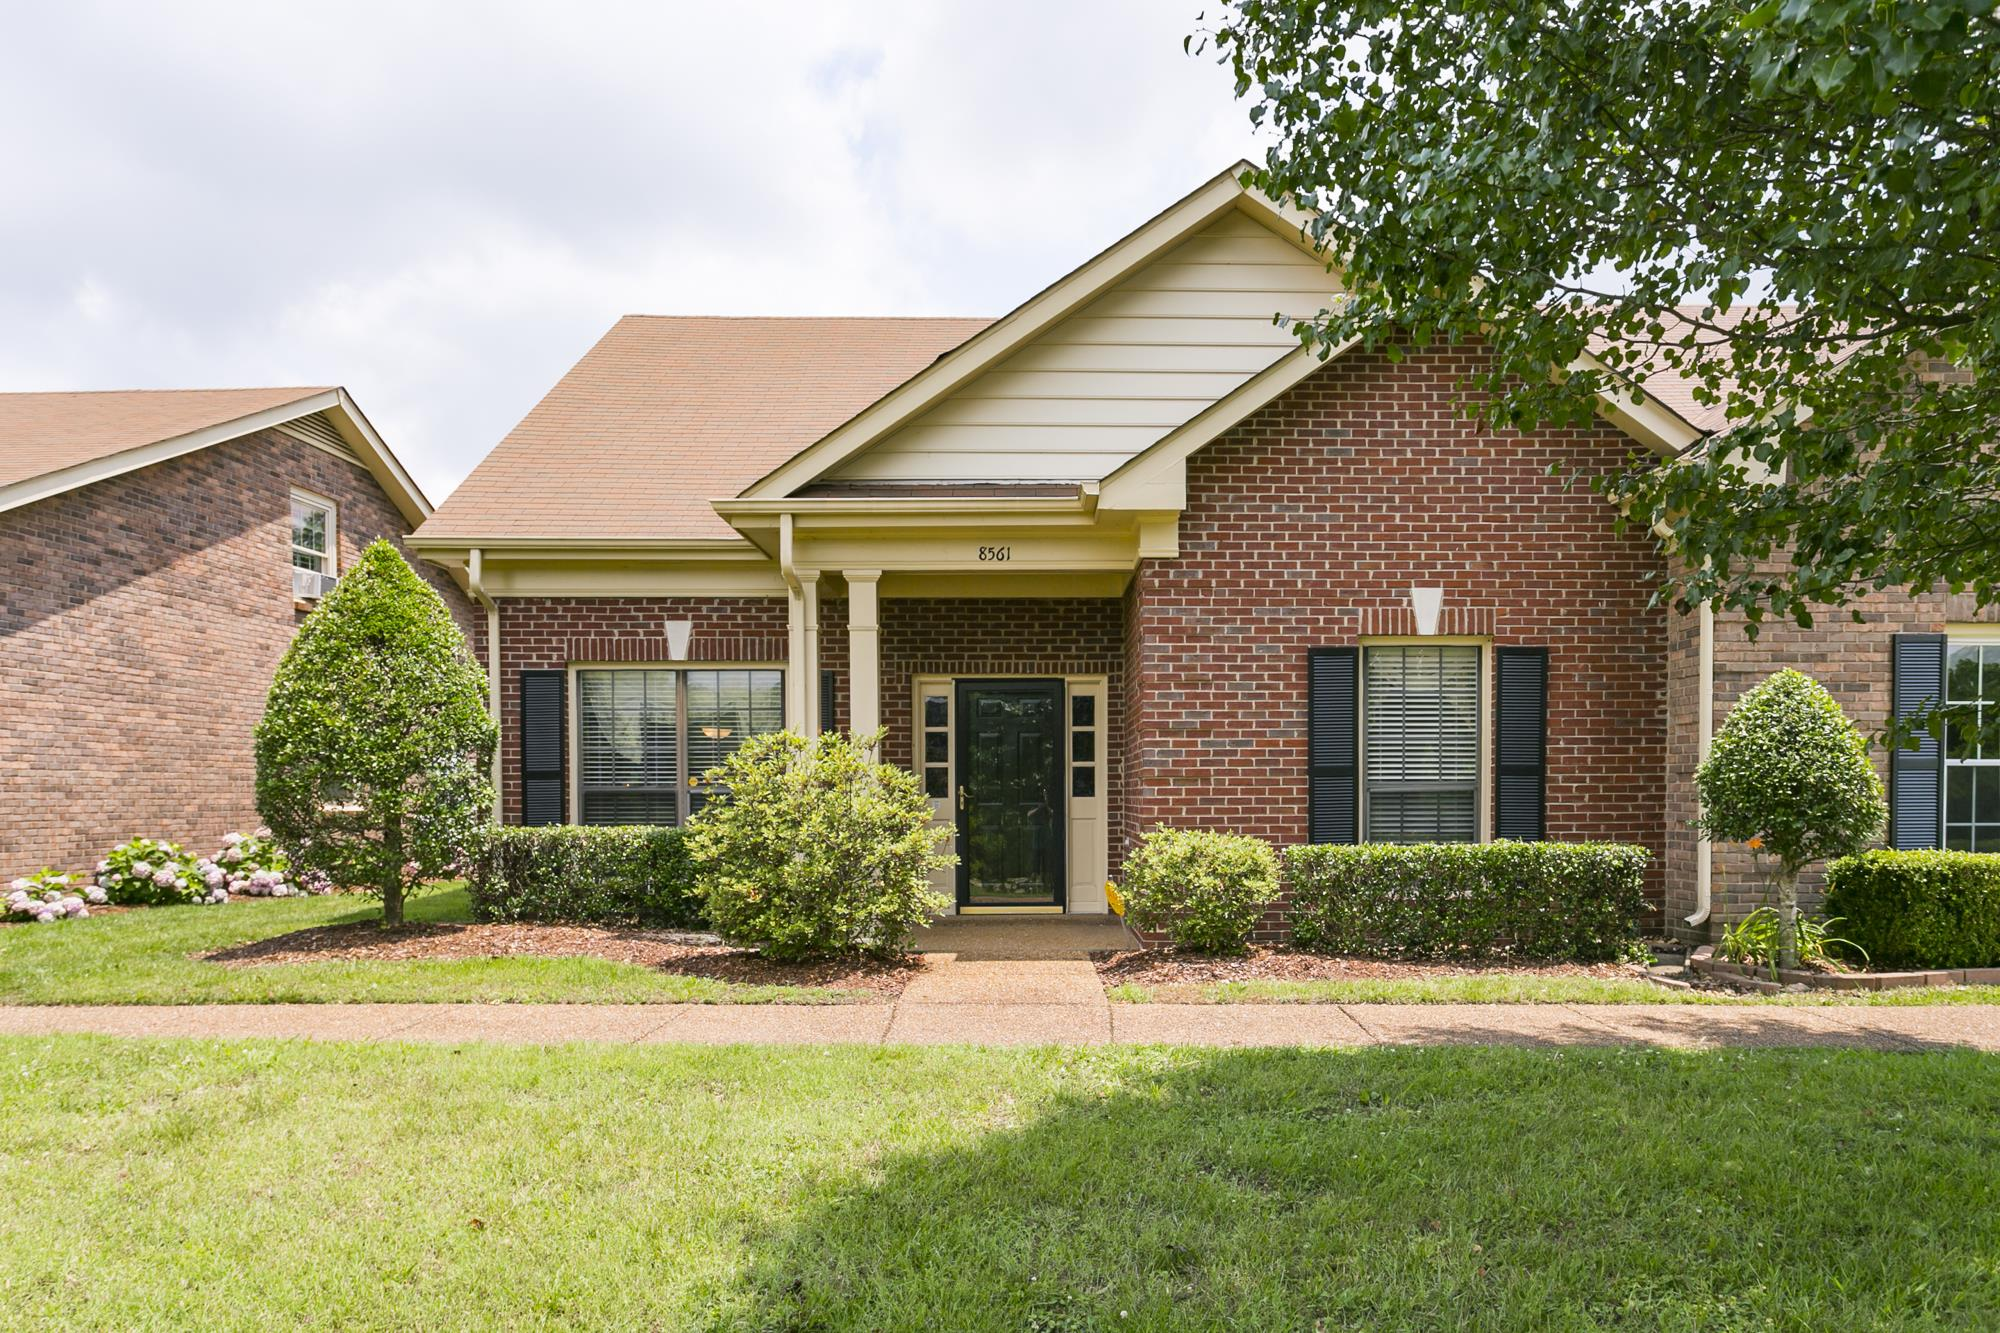 8561 Sawyer Brown Rd, Bellevue in Davidson County County, TN 37221 Home for Sale